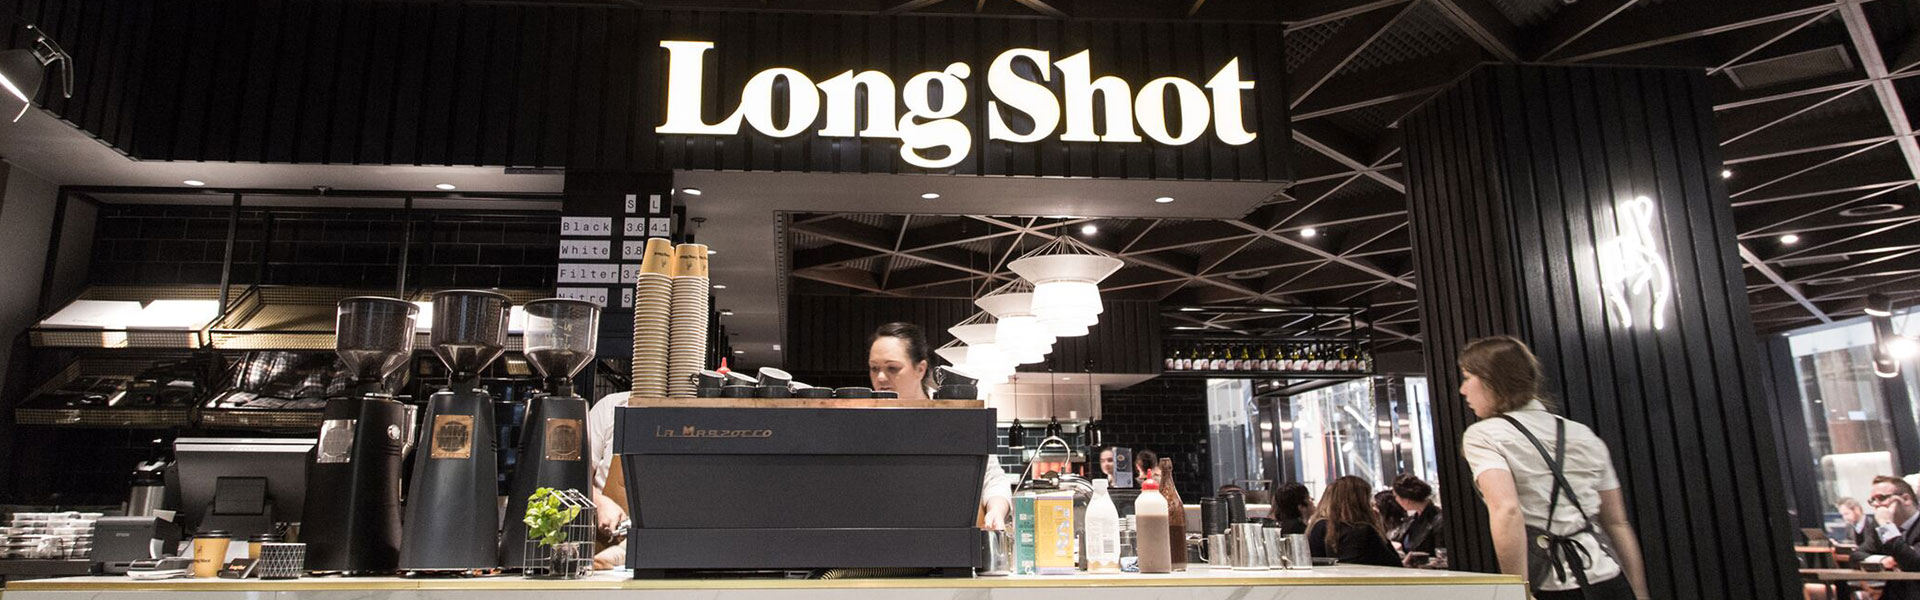 Long Shot Cafe - Interior